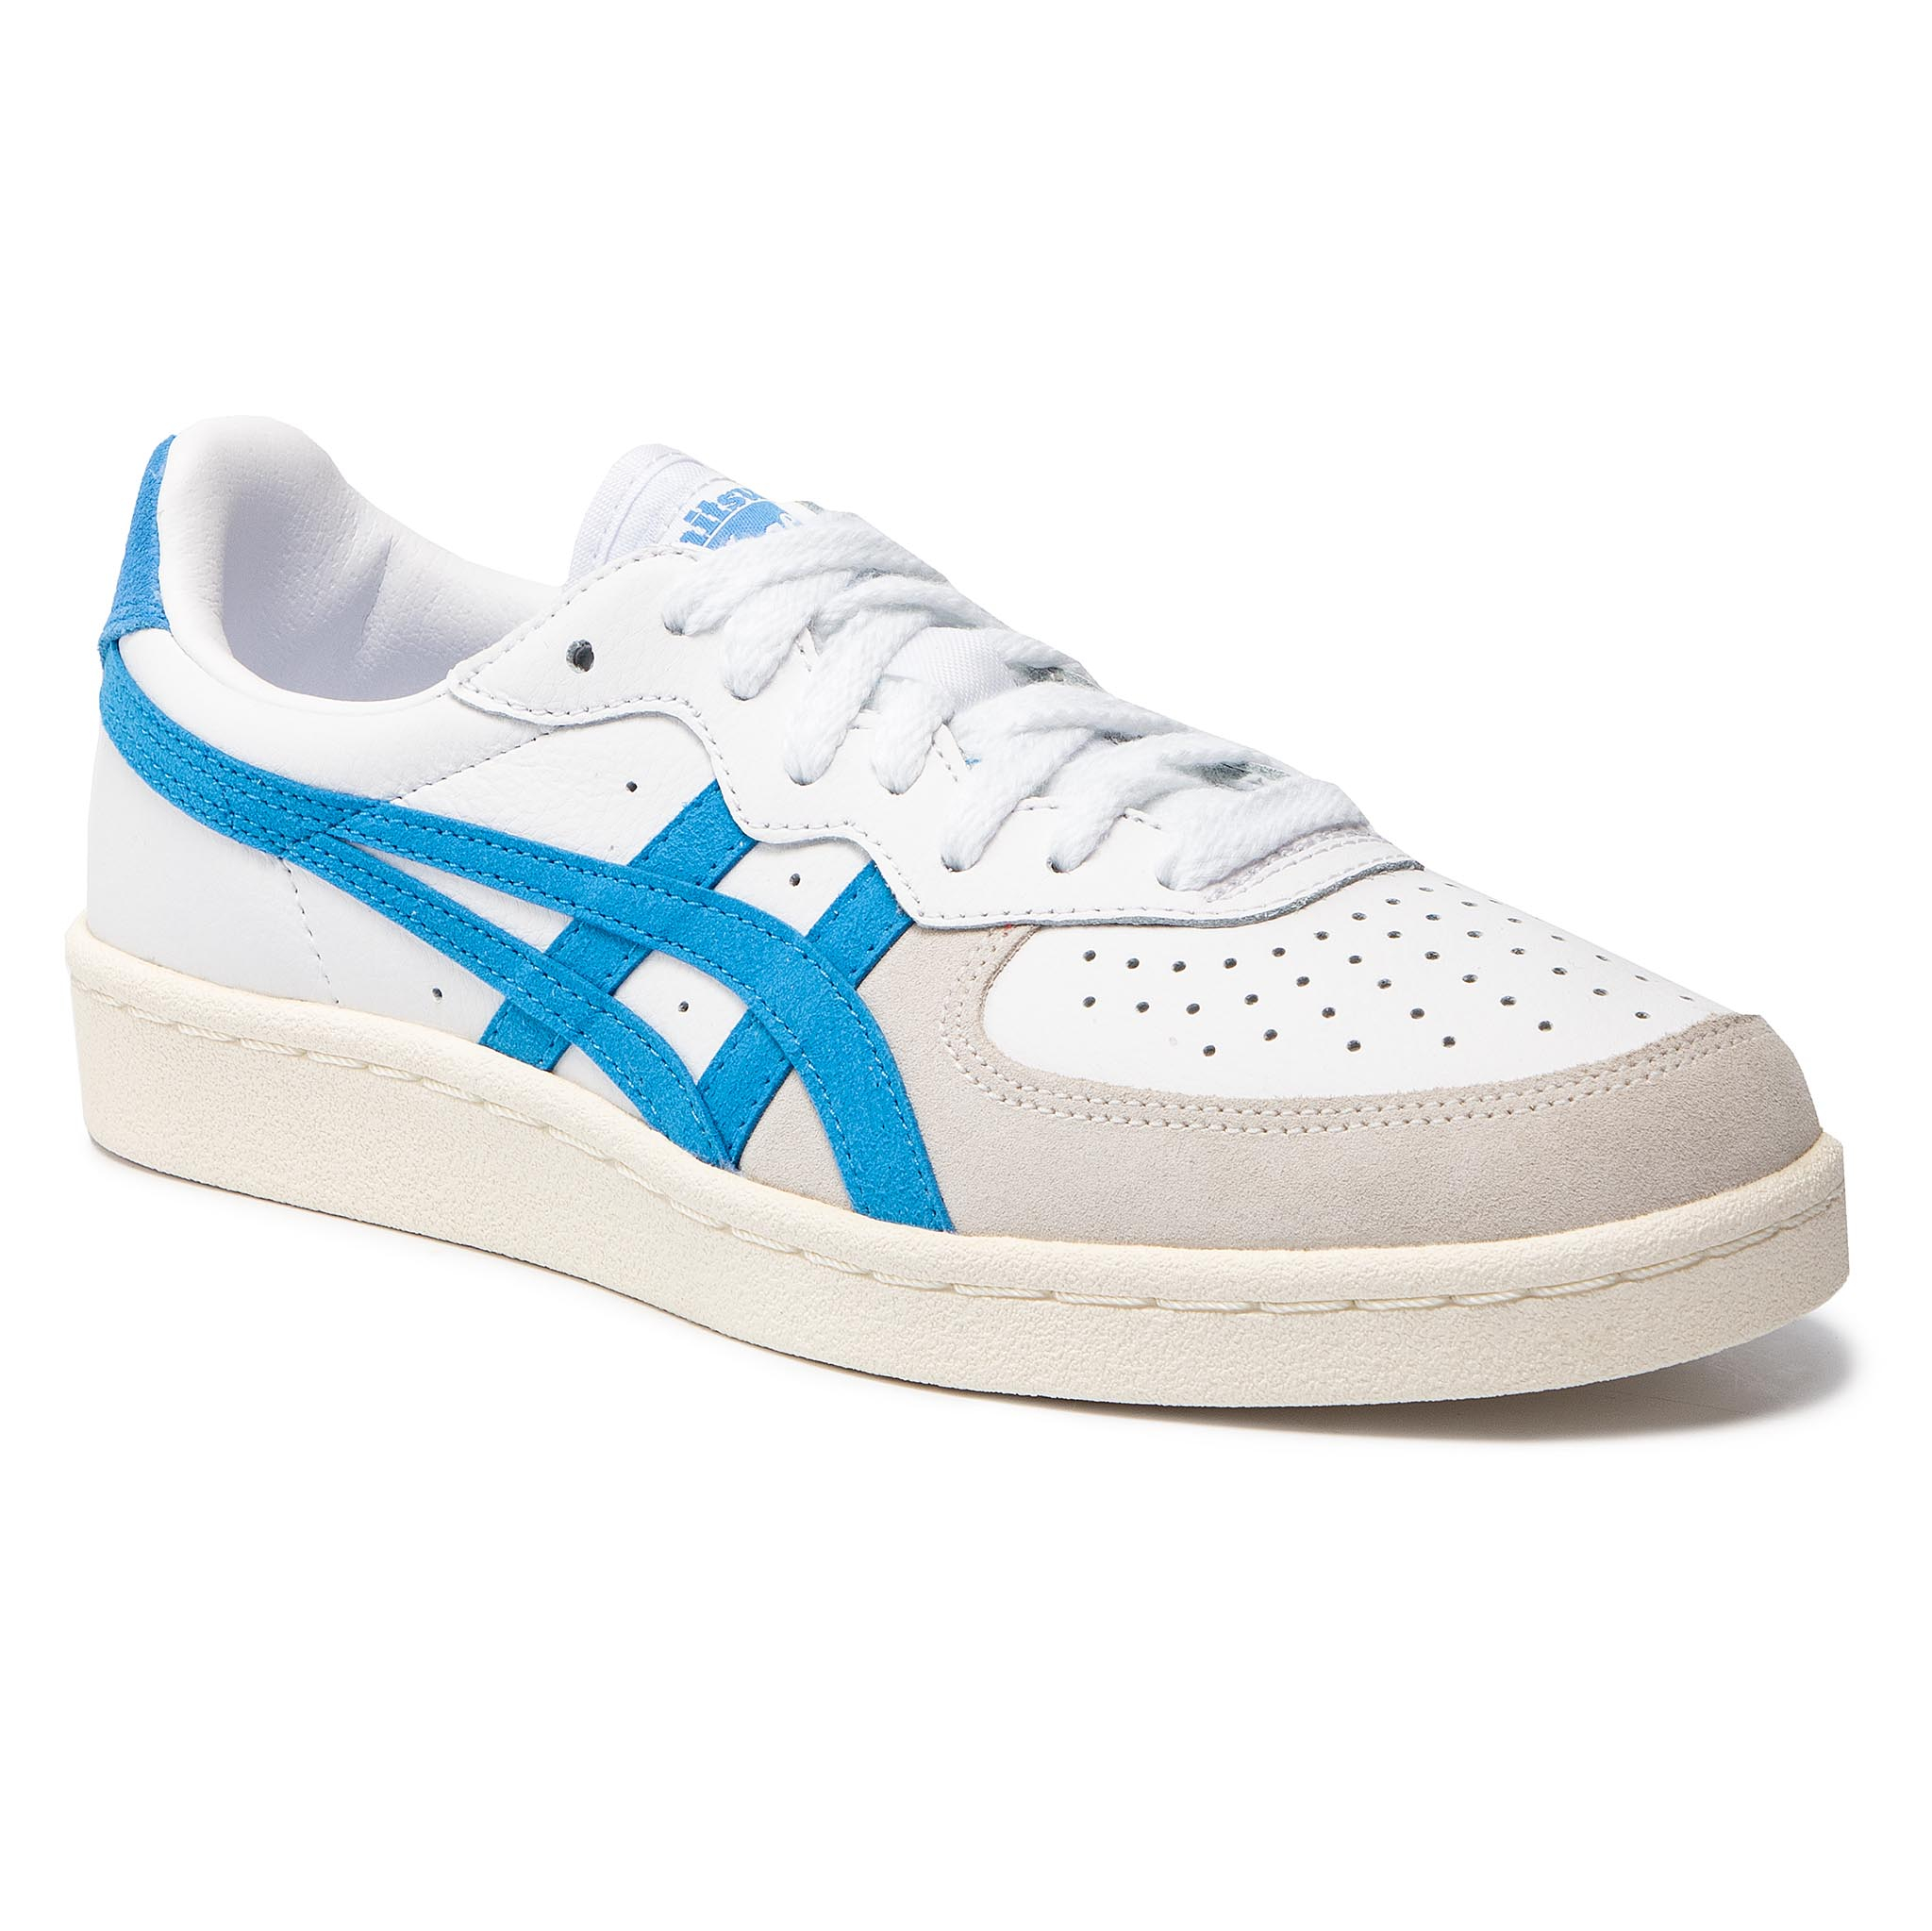 Sneakers ONITSUKA TIGER - Gsm 1182A076 White/Azul Blue 103